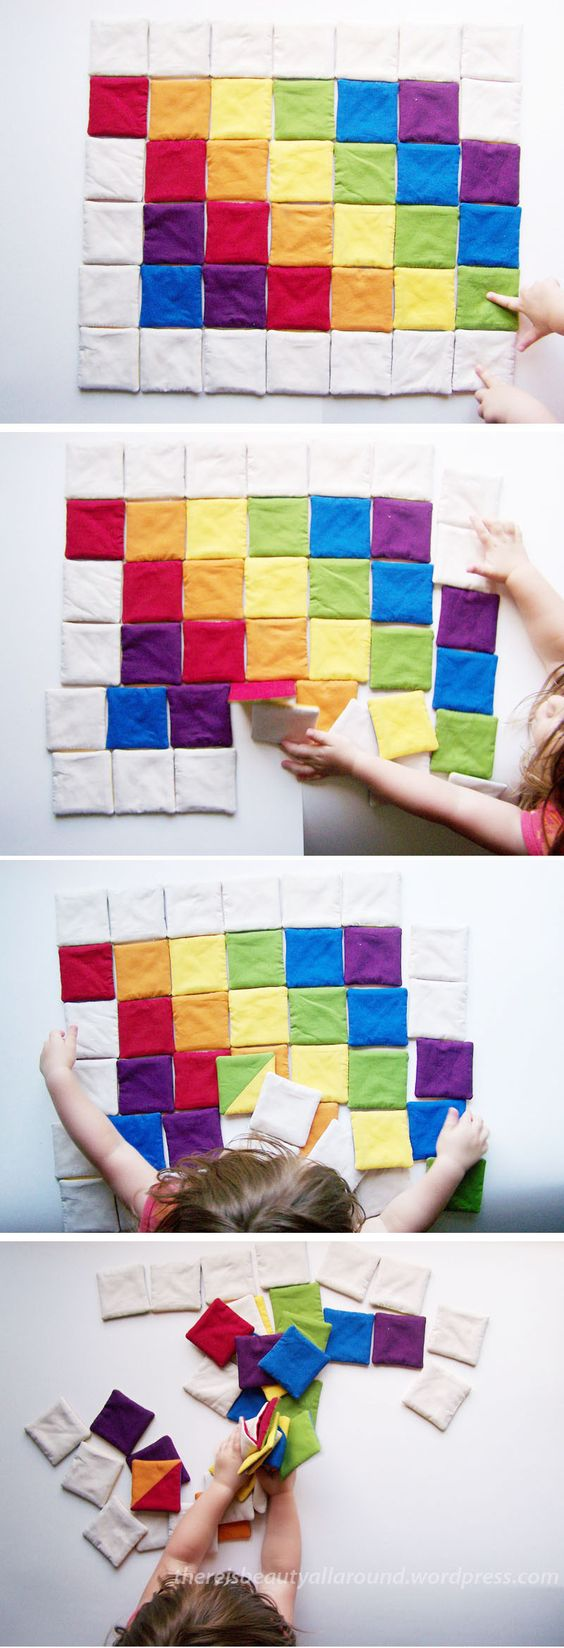 Tutorial: Tangram-esque Fabric Puzzle | Beauty All Around: